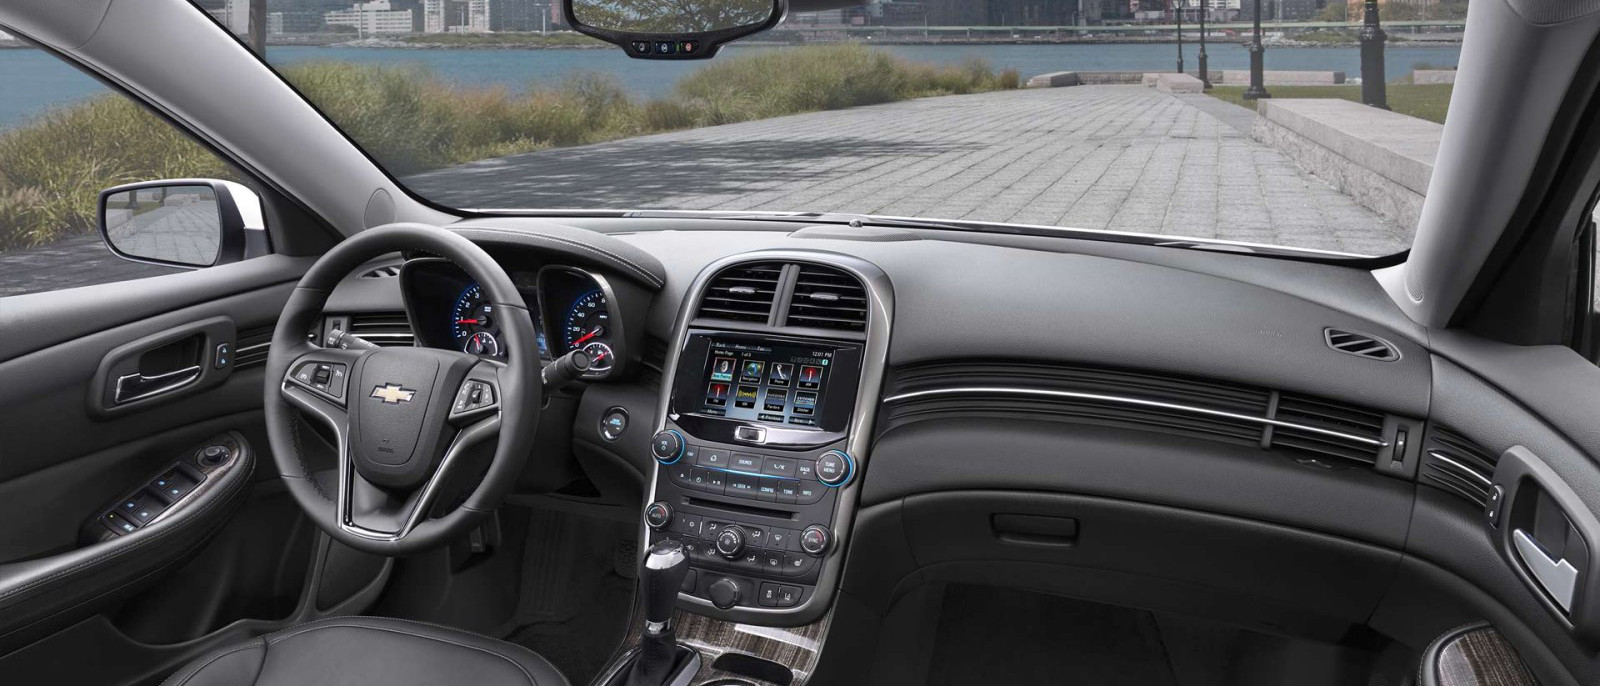 2015 Chevy Malibu Interior ...